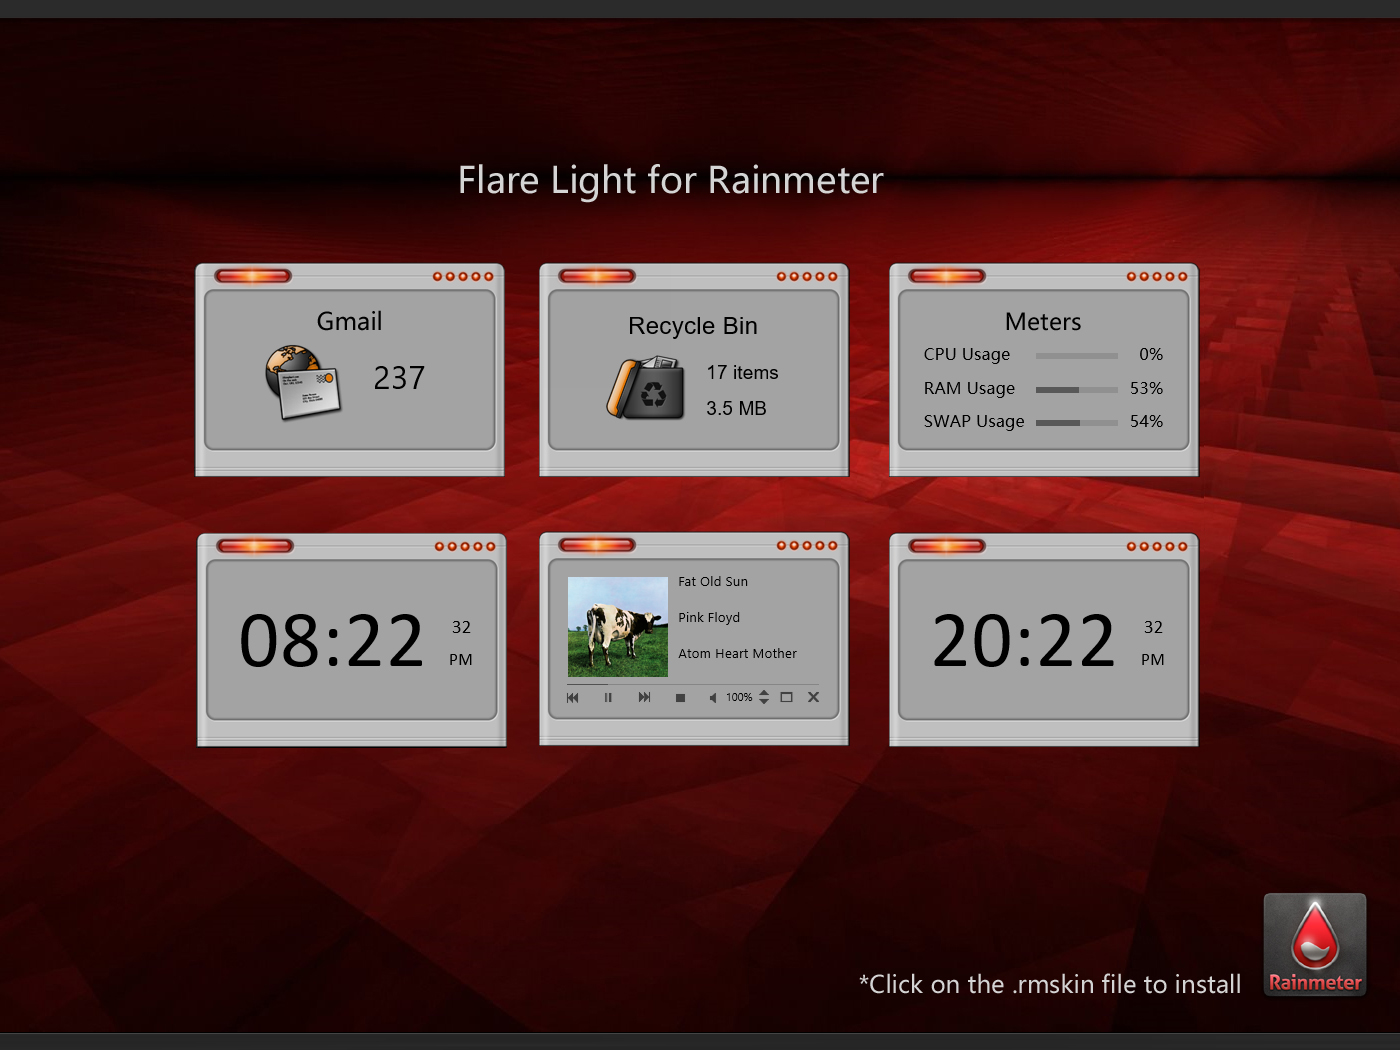 Flare Light Rainmeter